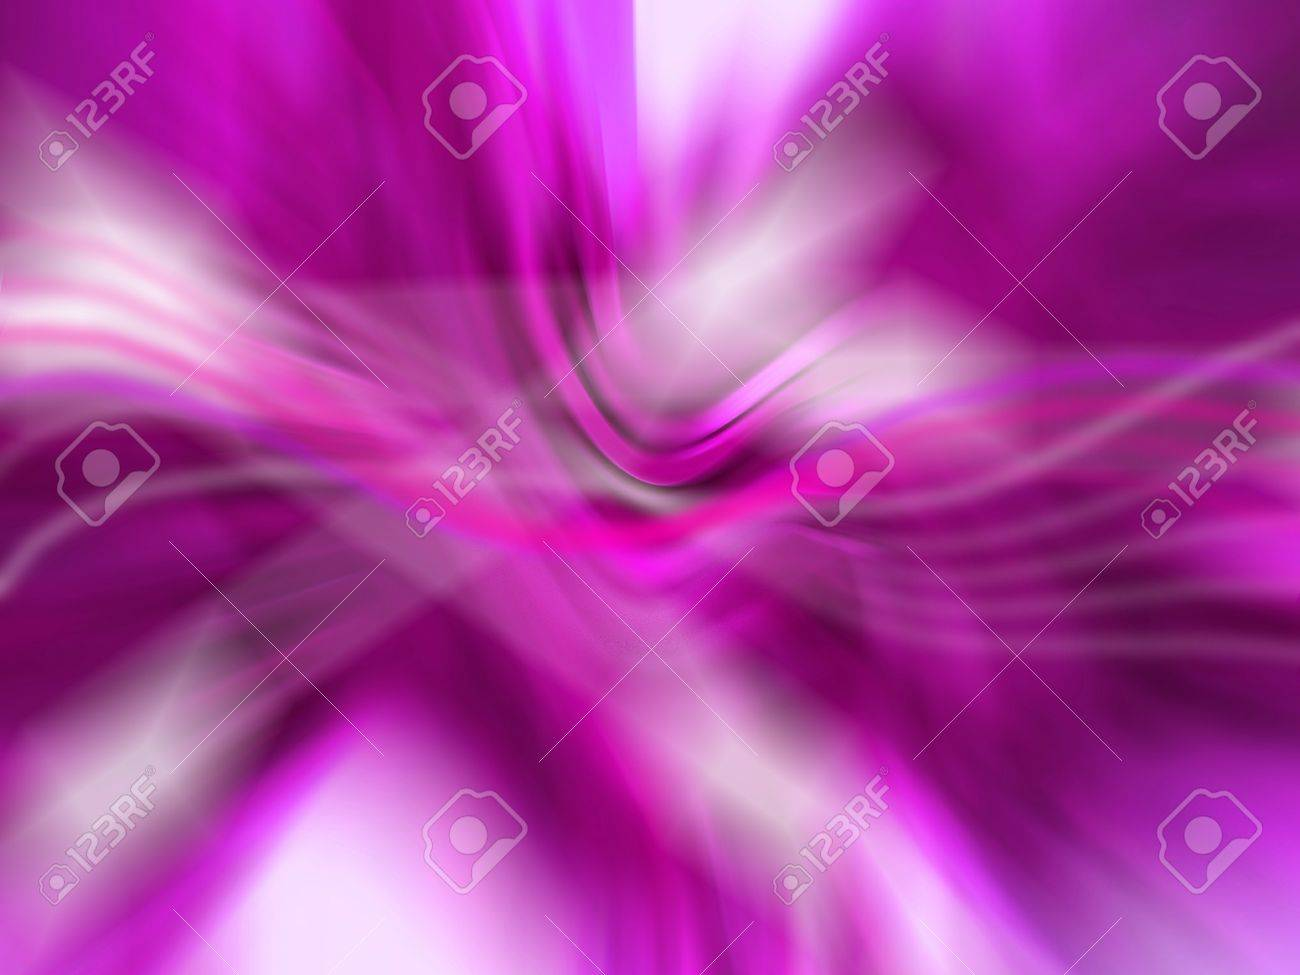 Pink, purple, abstract, blurry background with lights and waves Stock Photo - 12807903